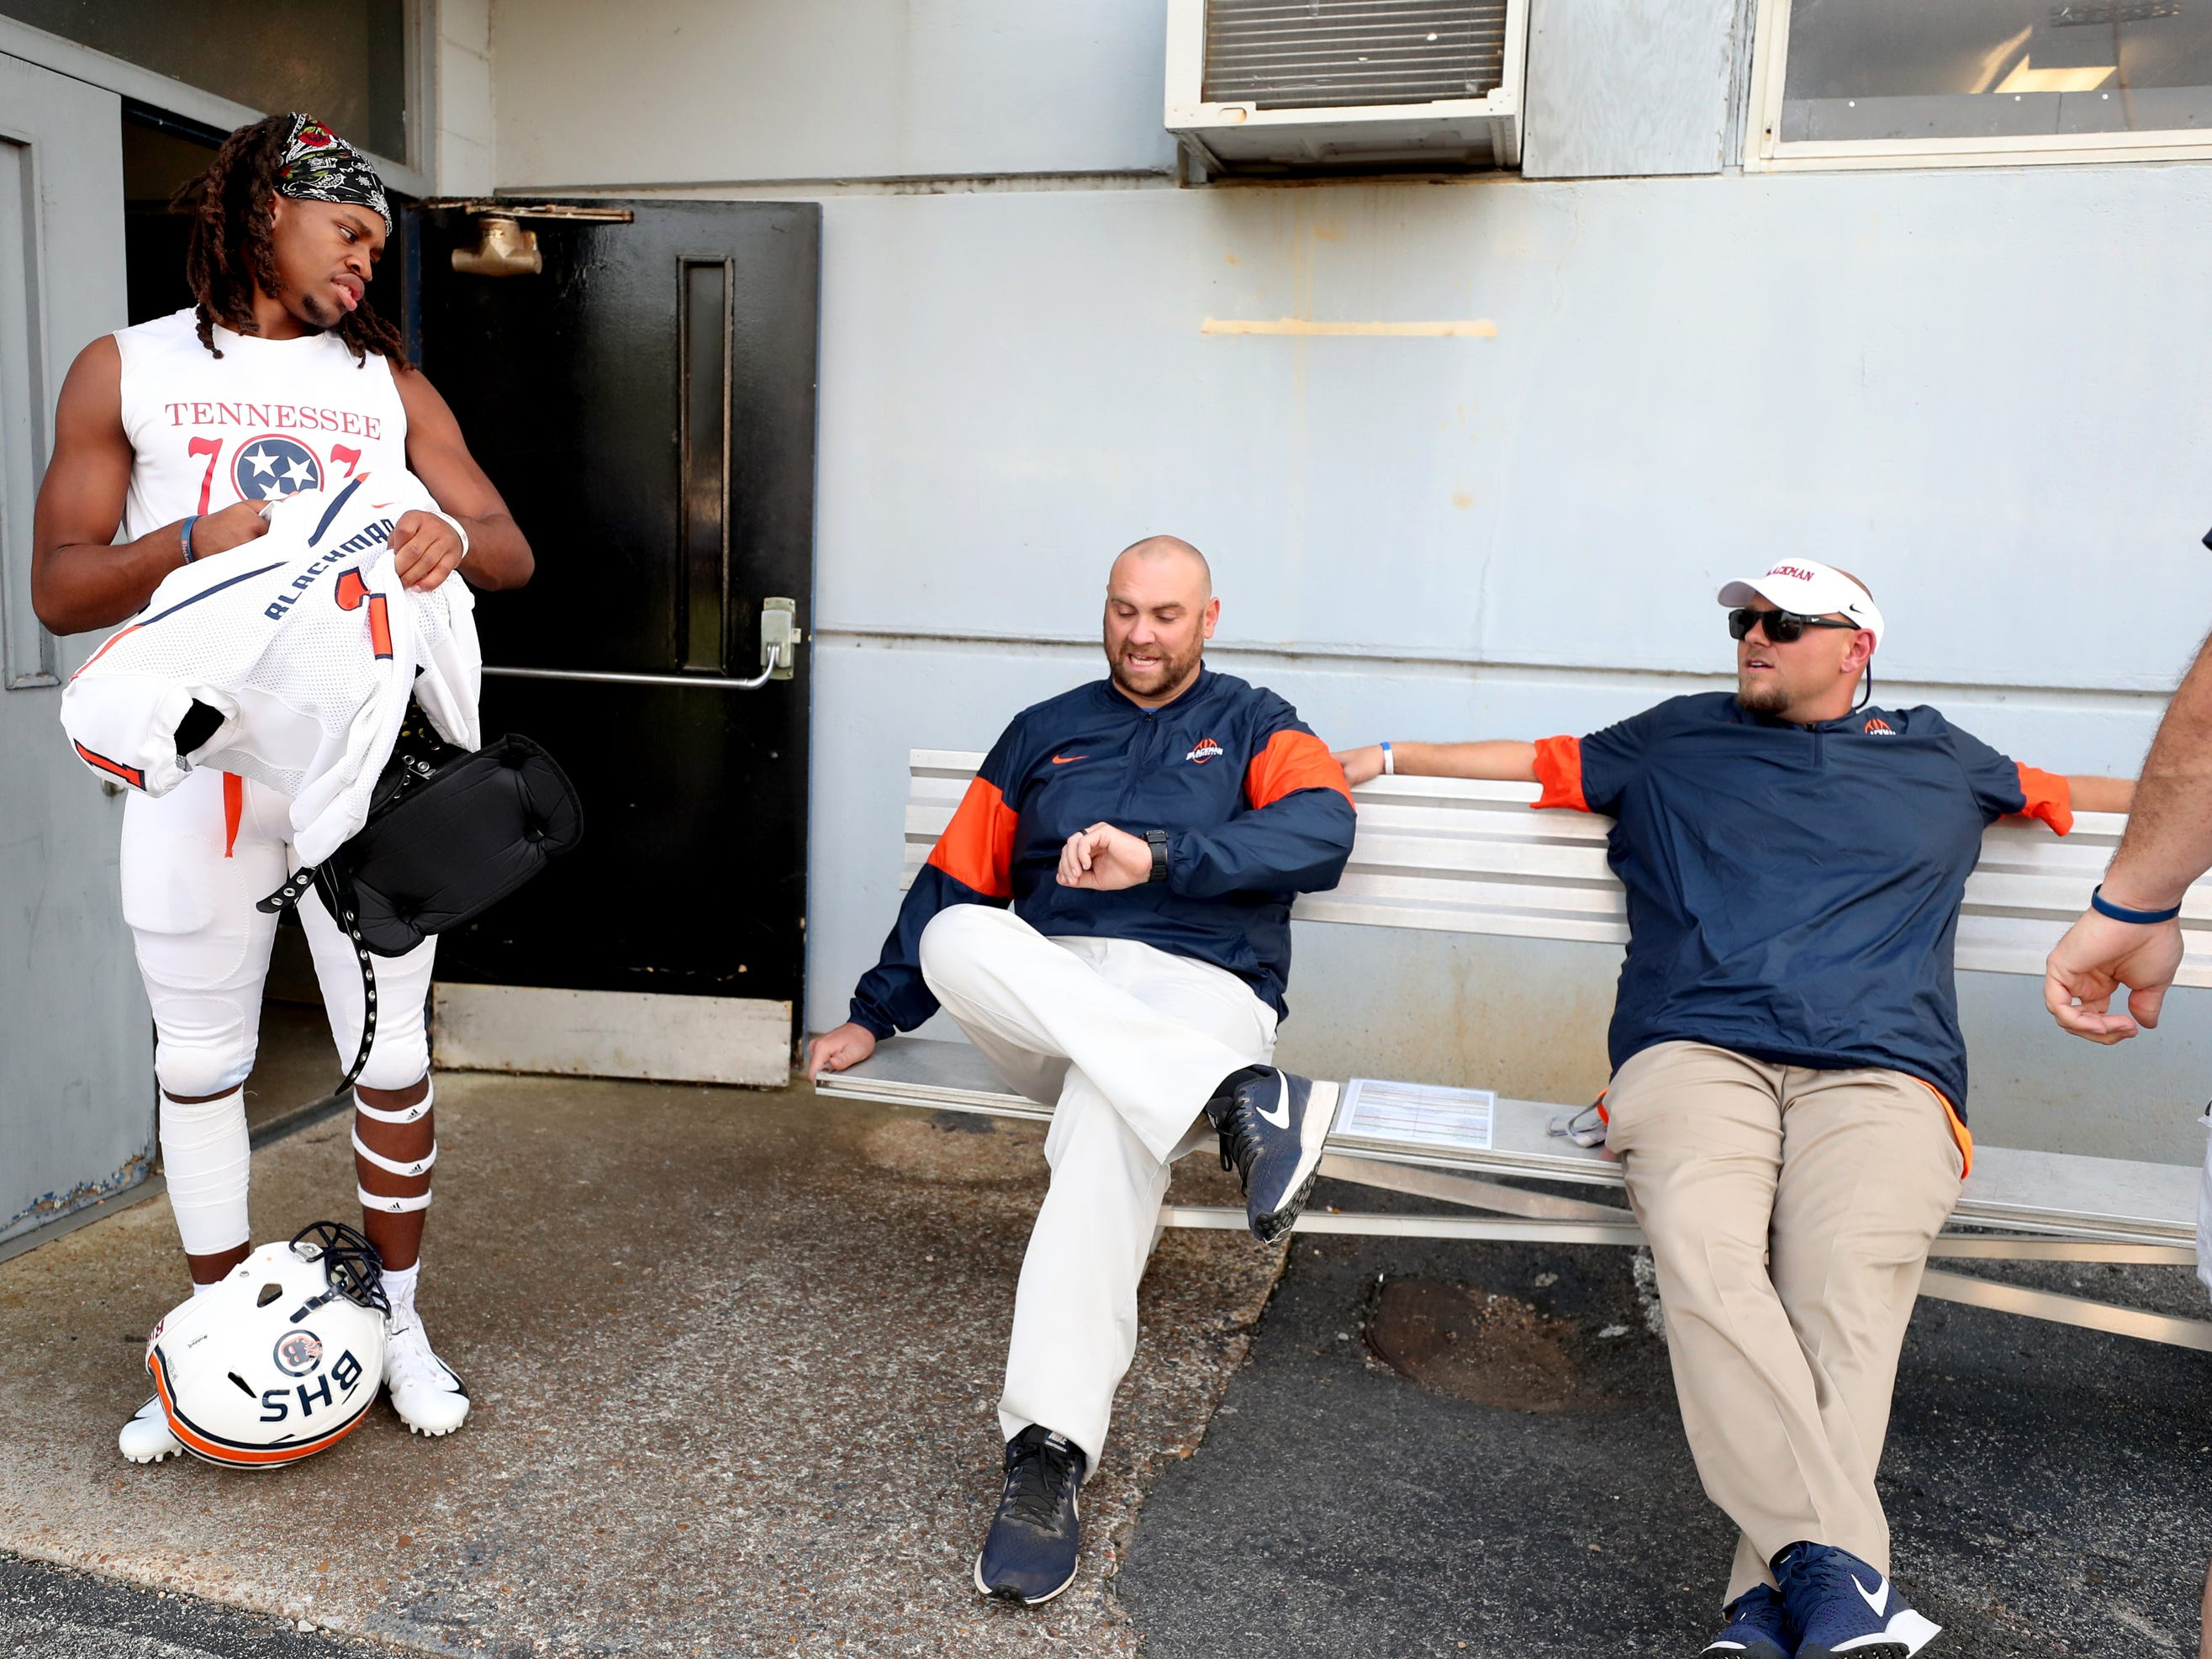 Blackman High School football player Adonis Otey talks with some of the coaches as he gets ready to take the field to warm up after arriving to Braly Municipal Stadium for the away game against Florence High School, on Friday Aug. 24, 2018, in Florence, Alabama.